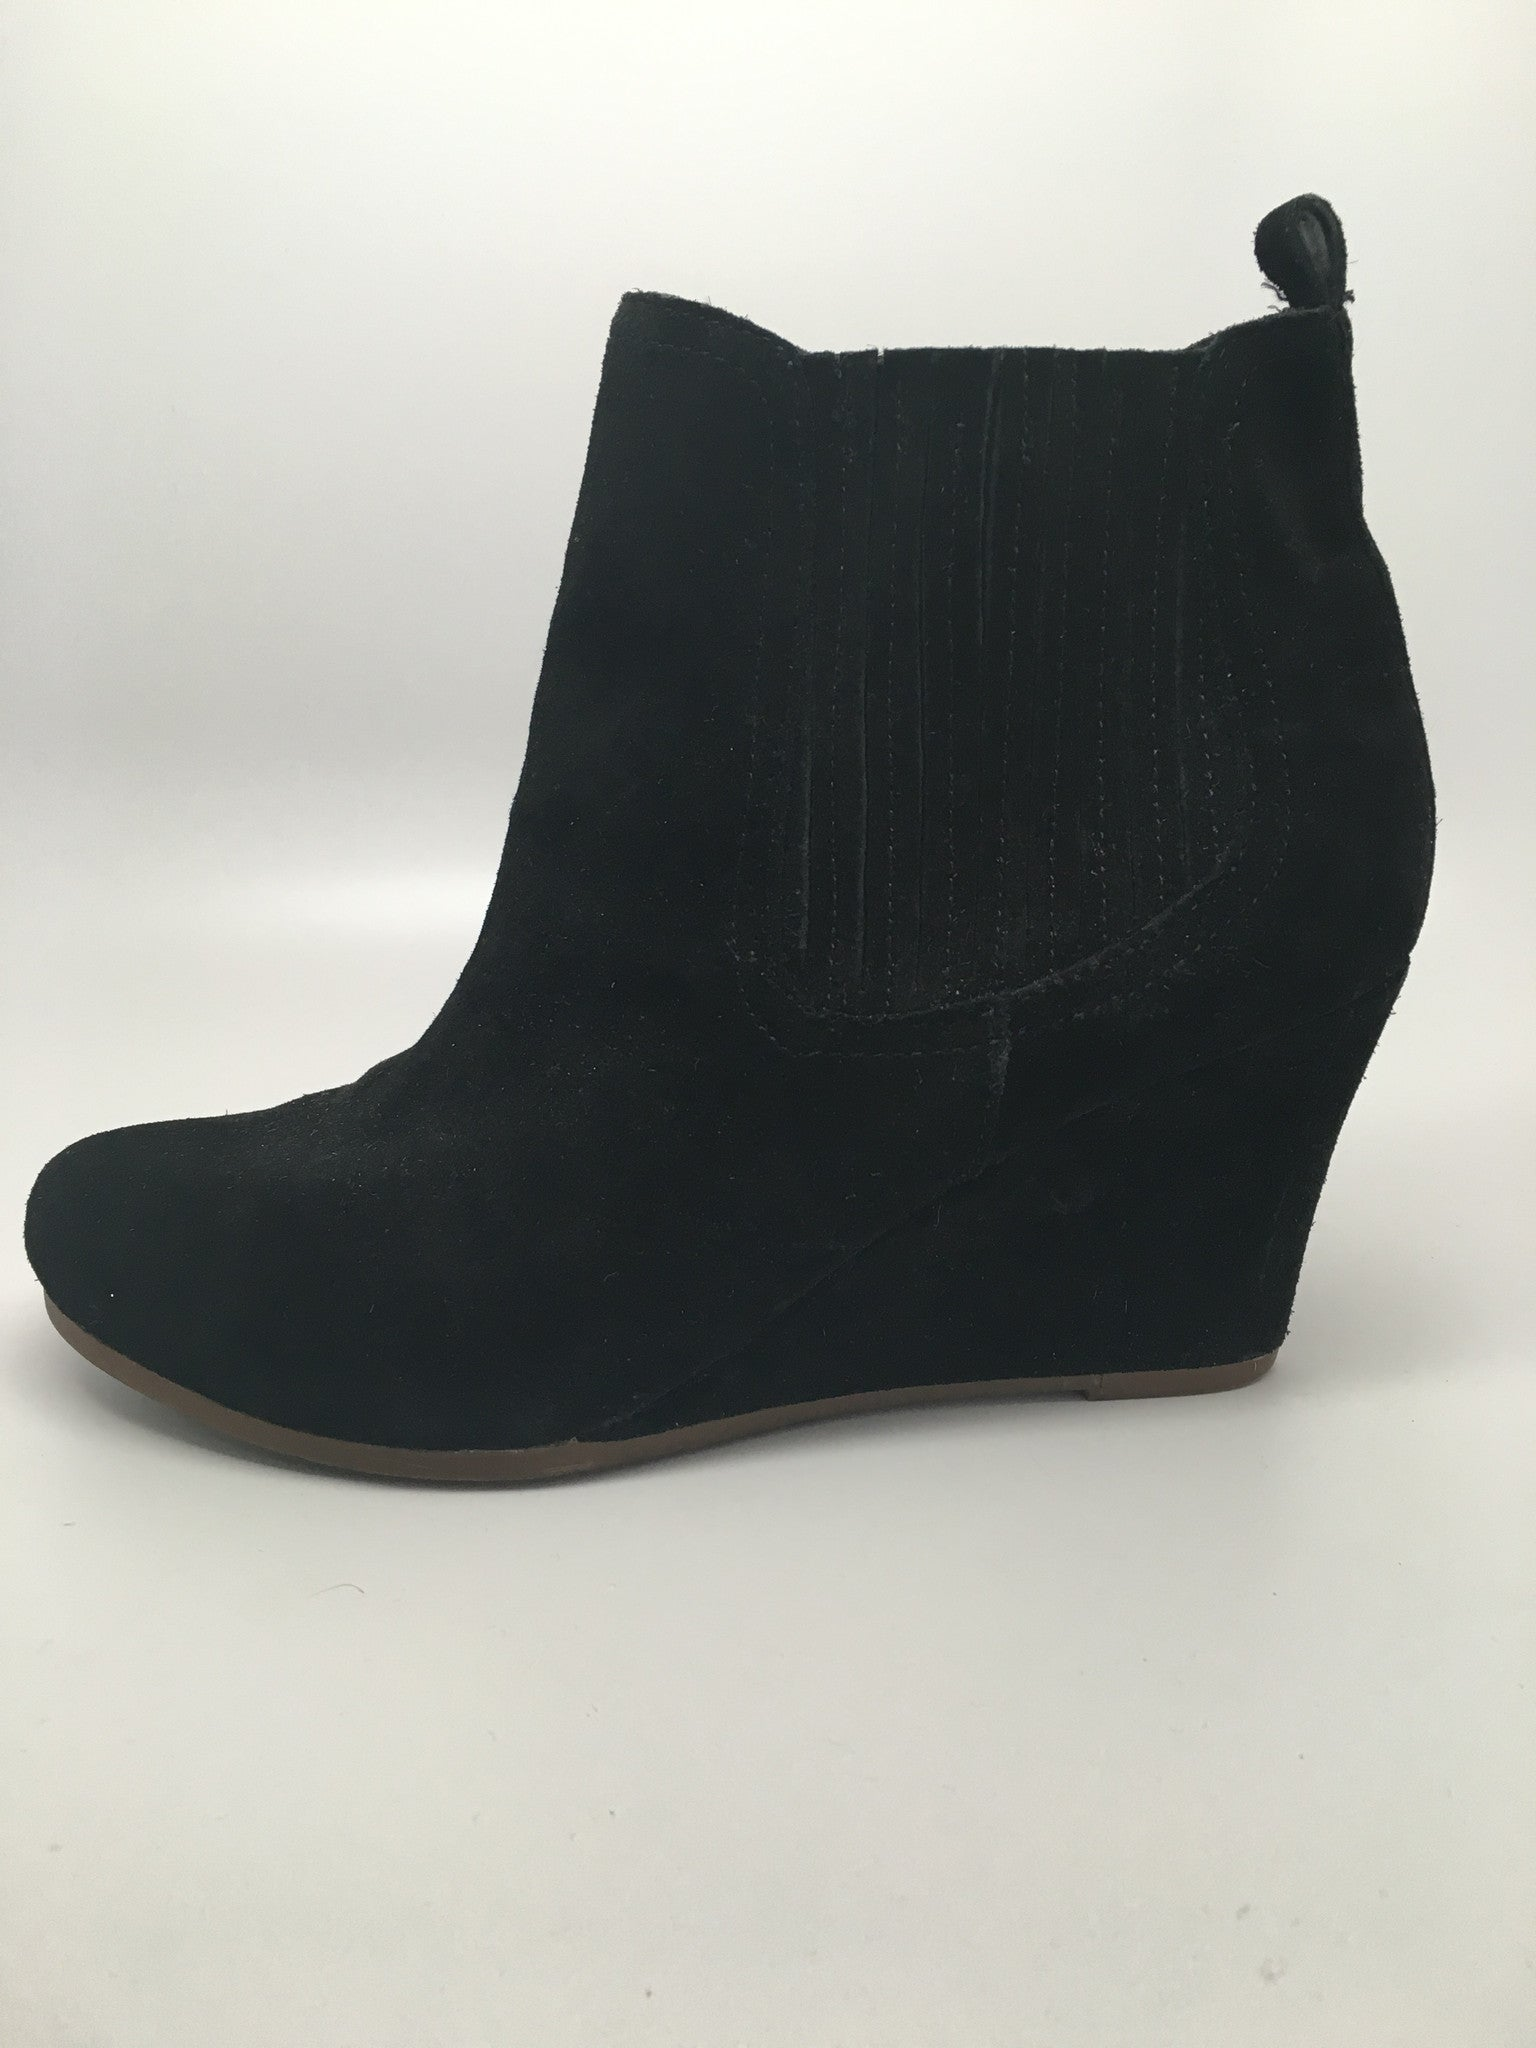 NEW DOLCE VITA POSIE WEDGE BOOTS SIZE 8 US